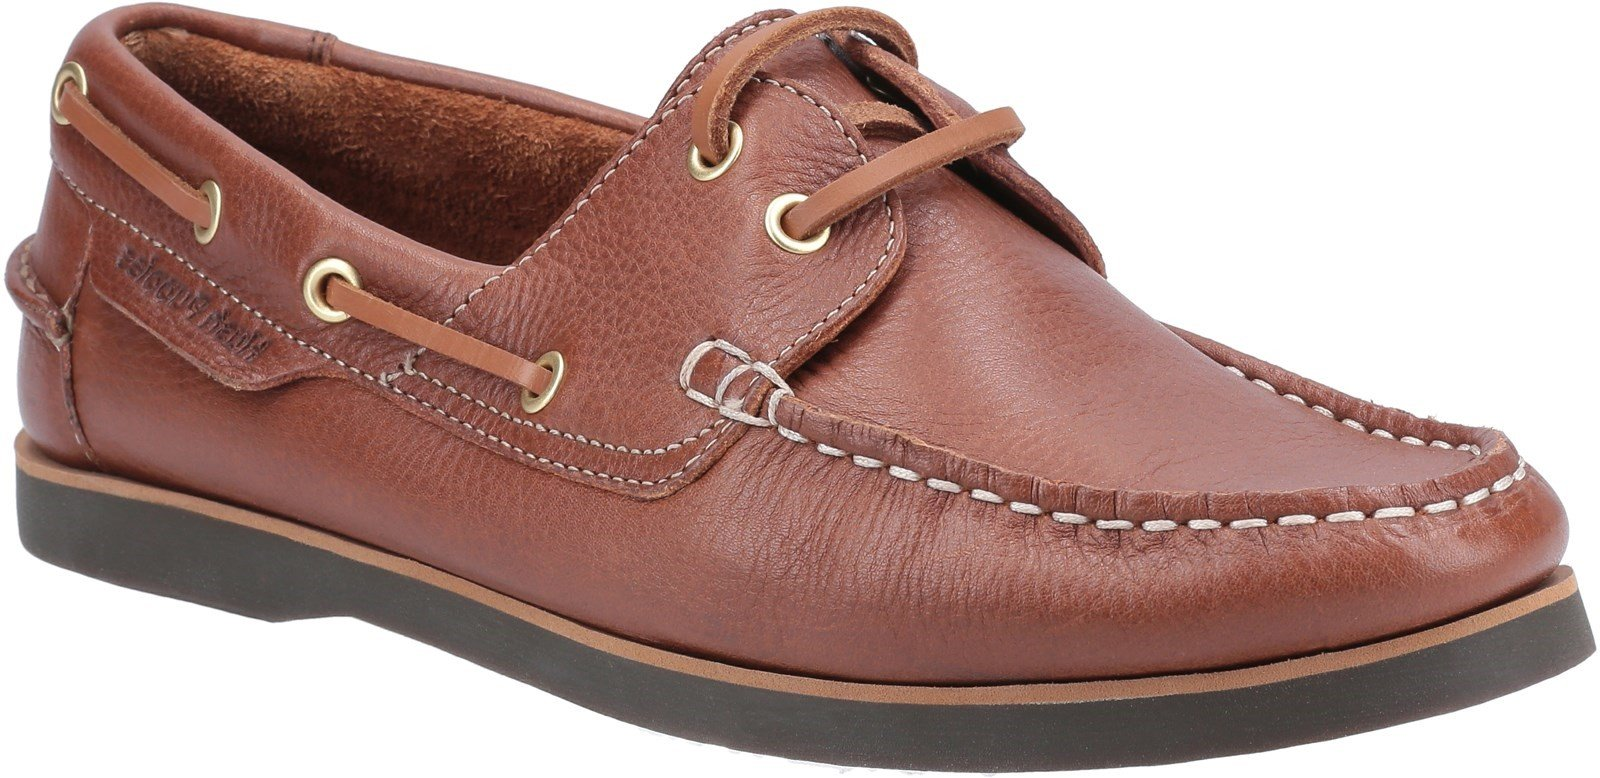 Hush Puppies Women's Hattie Lace Loafer Various Colours 30223 - Tan 5